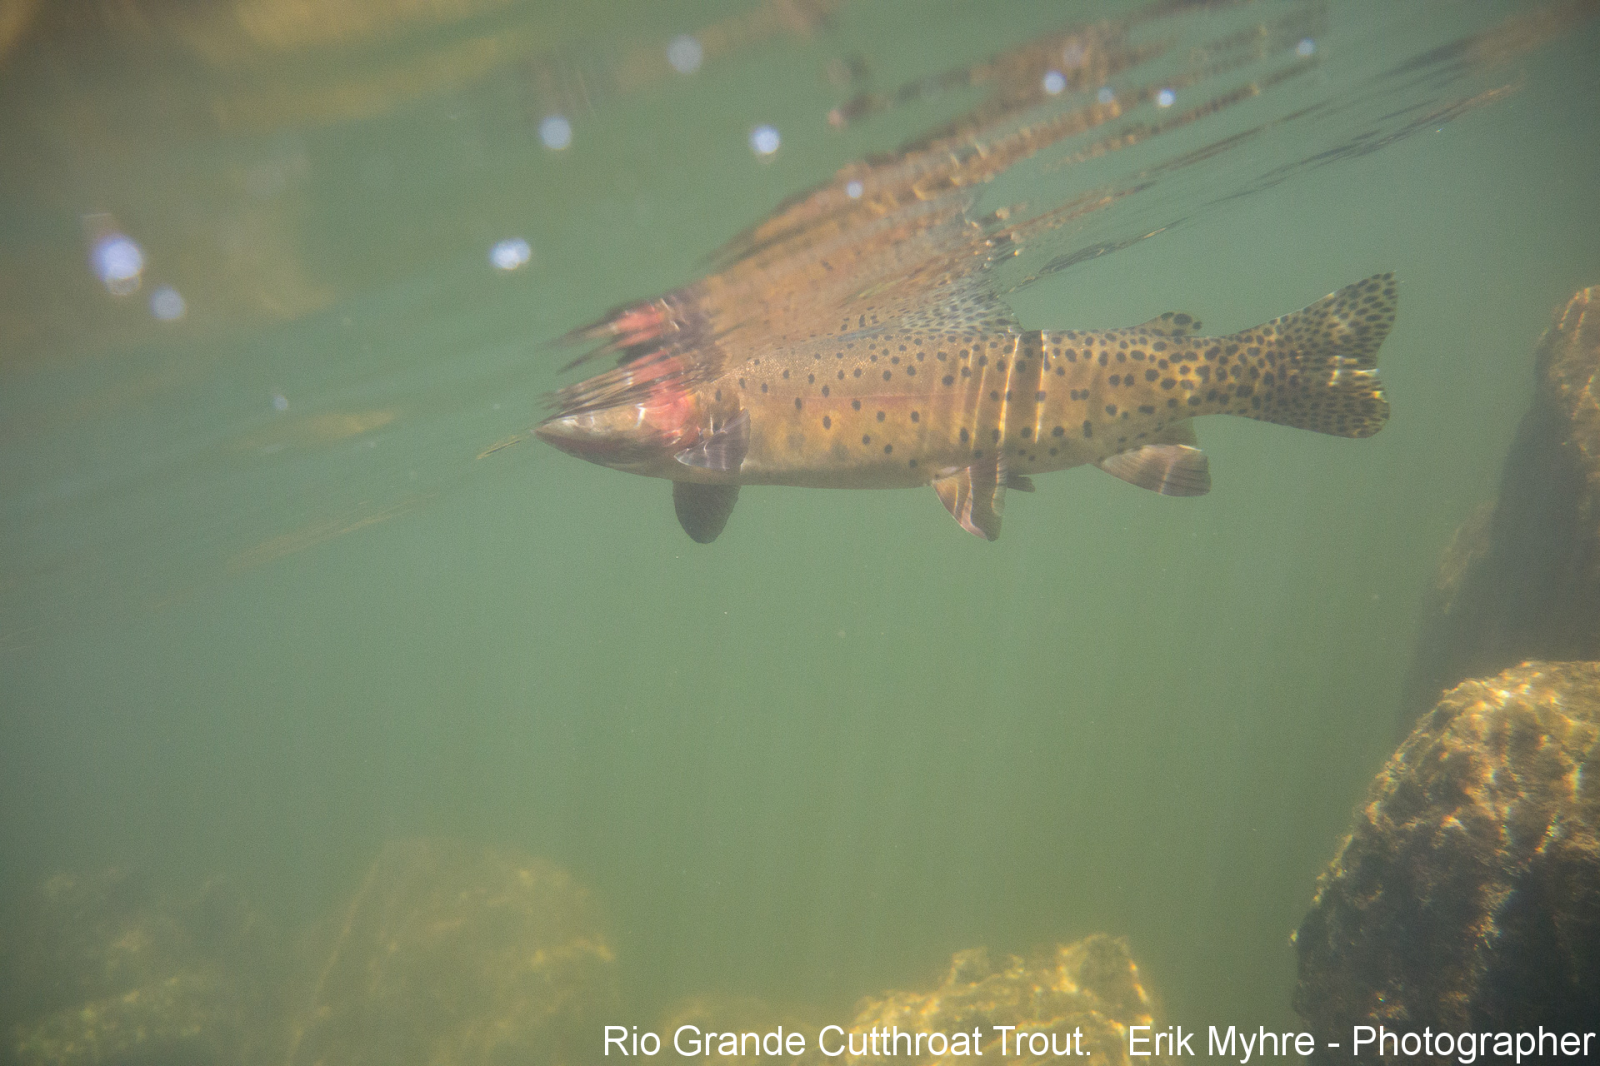 Rio Grande Cutthroat Trout. Erik Myhre Photographer